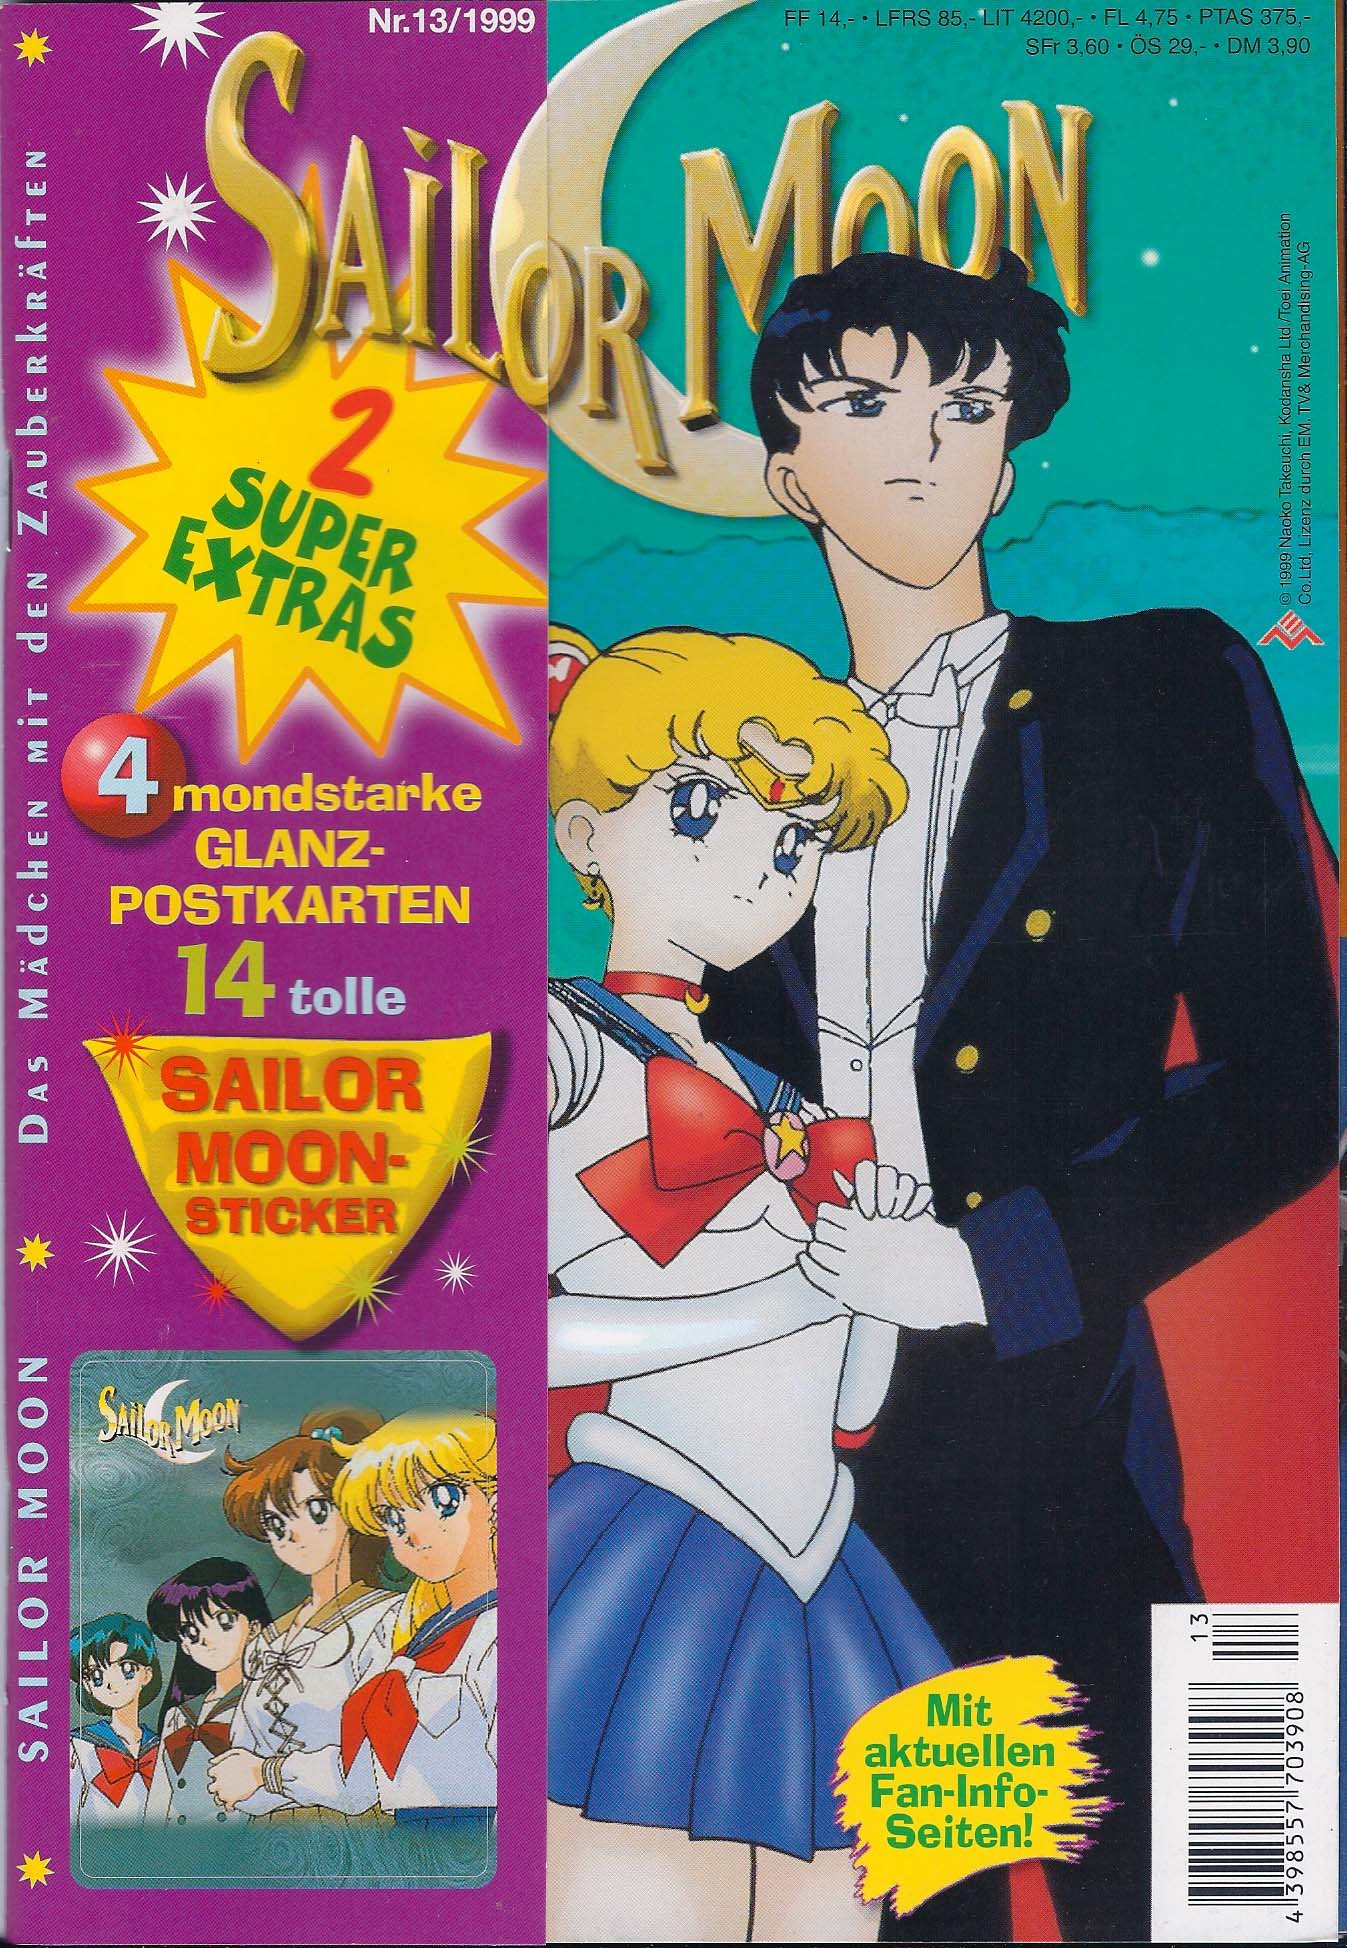 Sailor Moon: Amazon.de: Naoko Takeuchi: Bücher